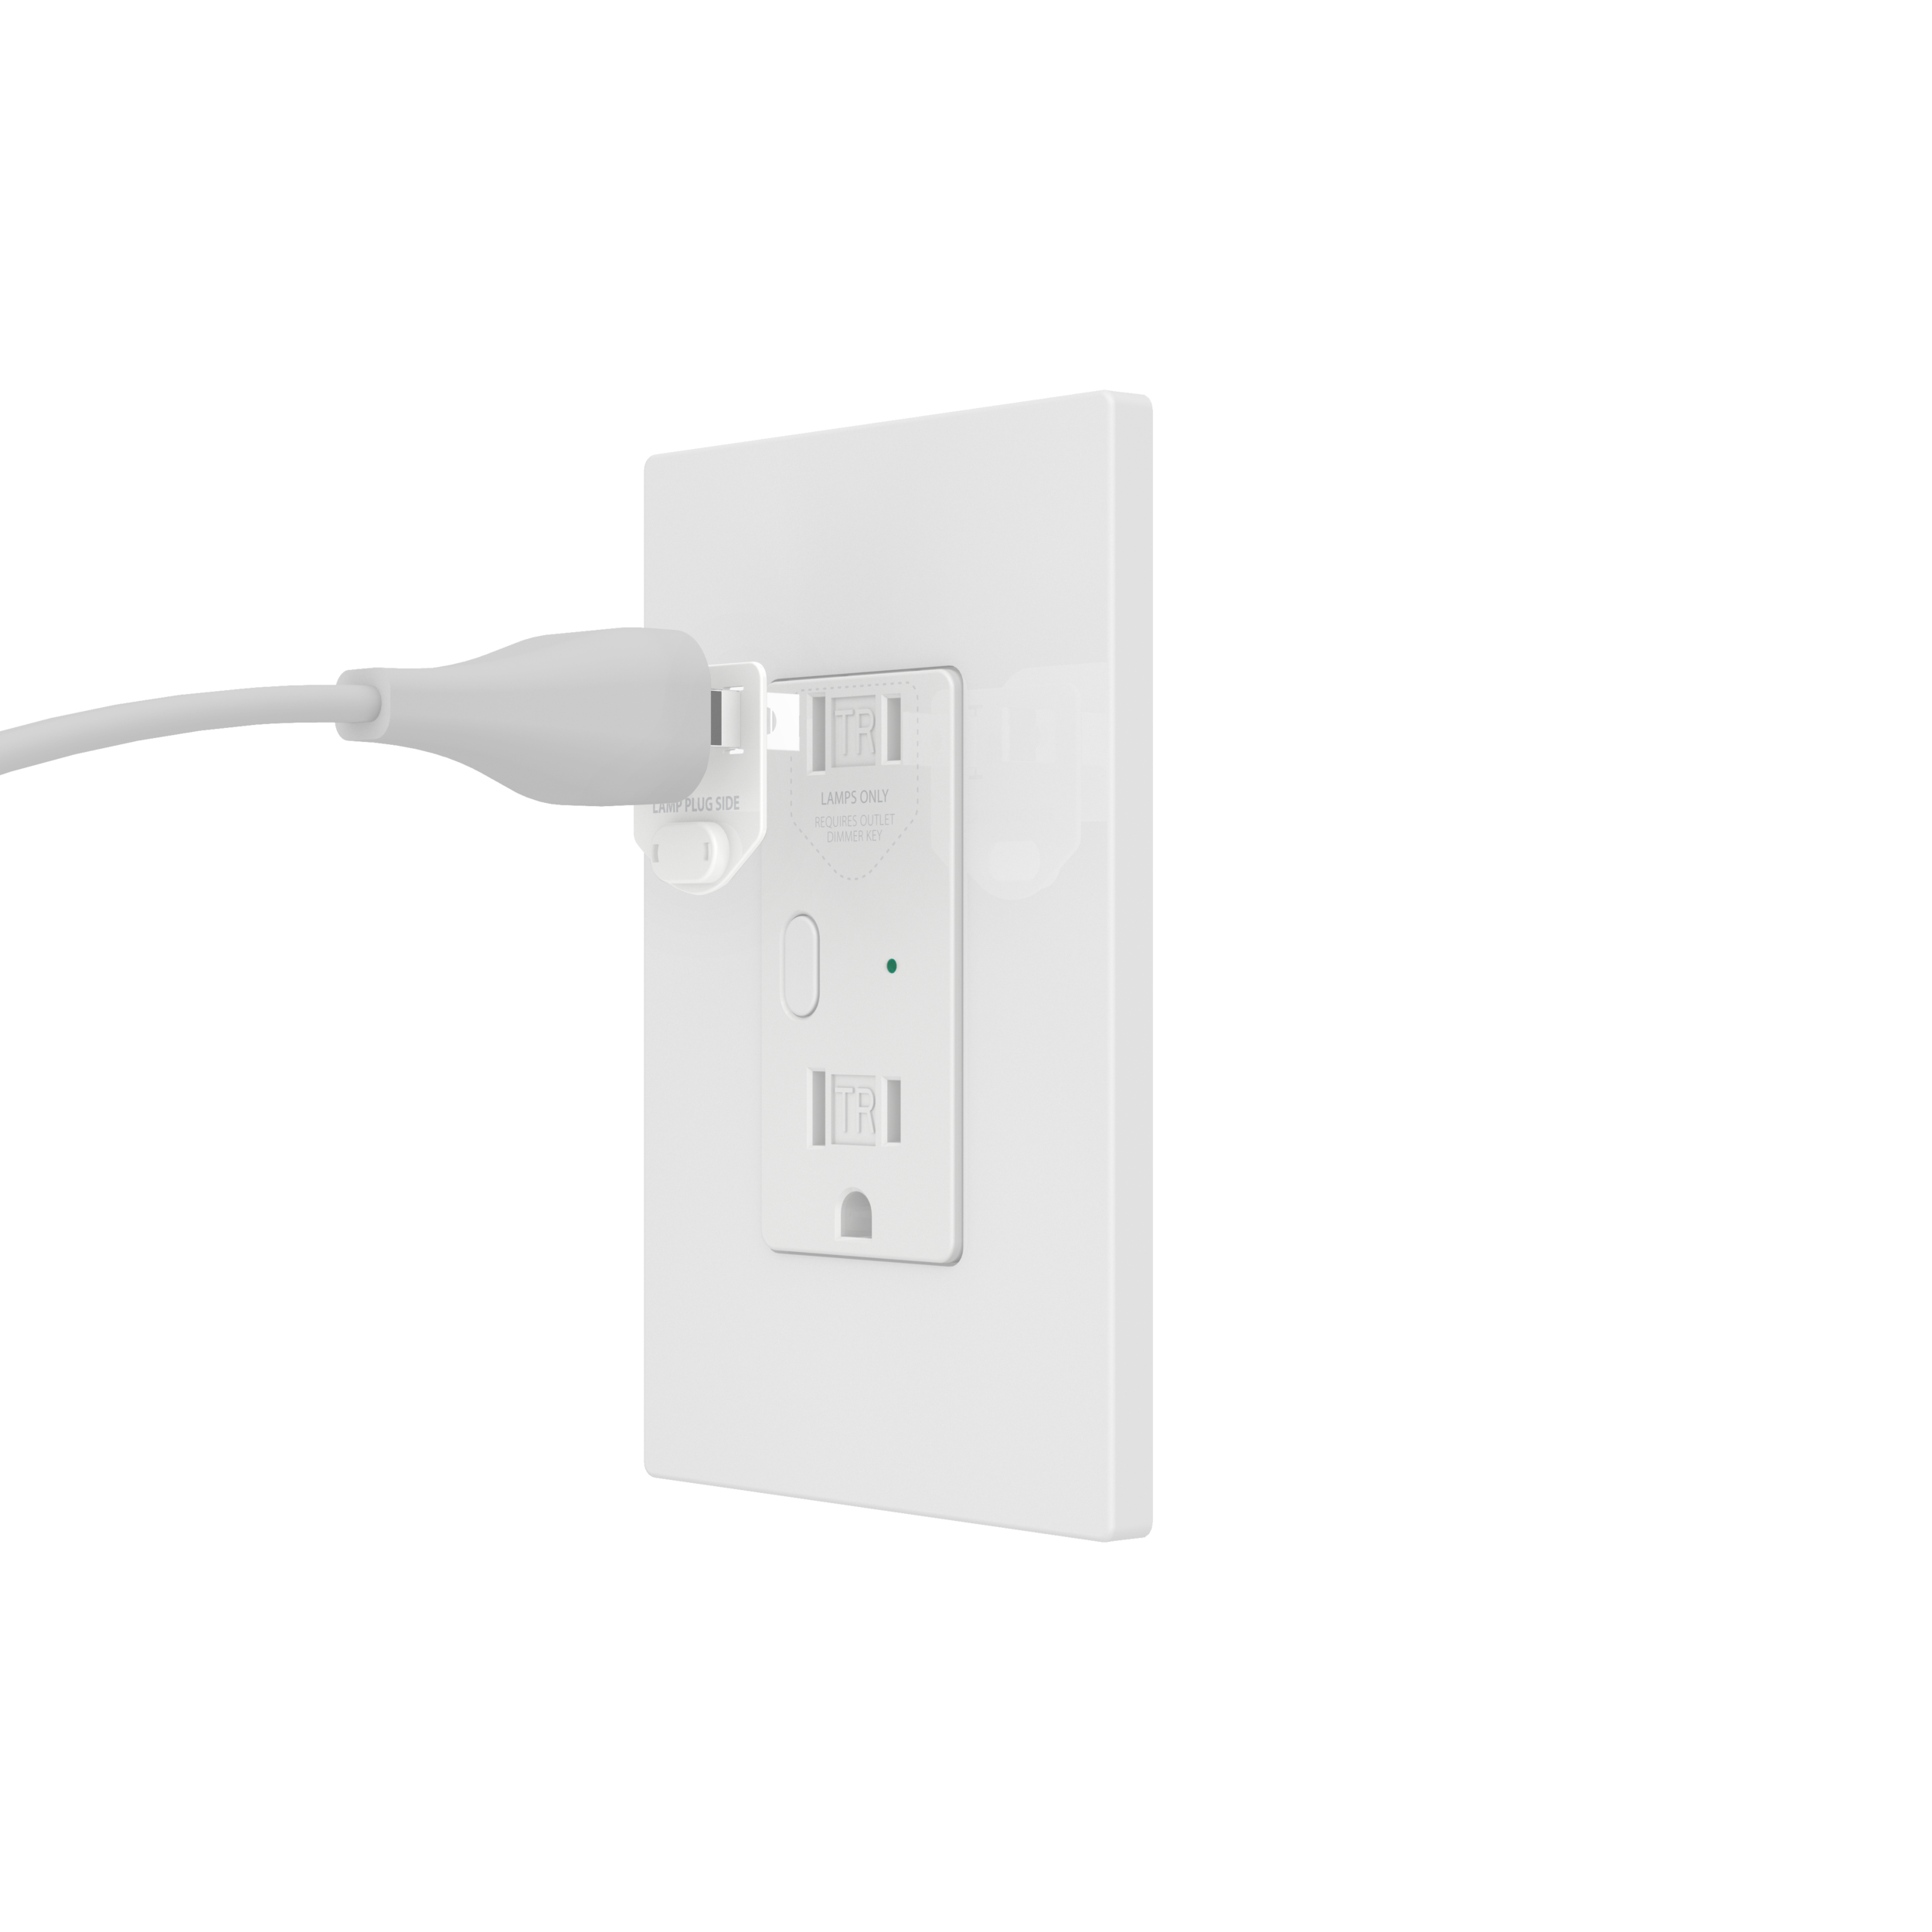 Dimmer Outlet 02.png